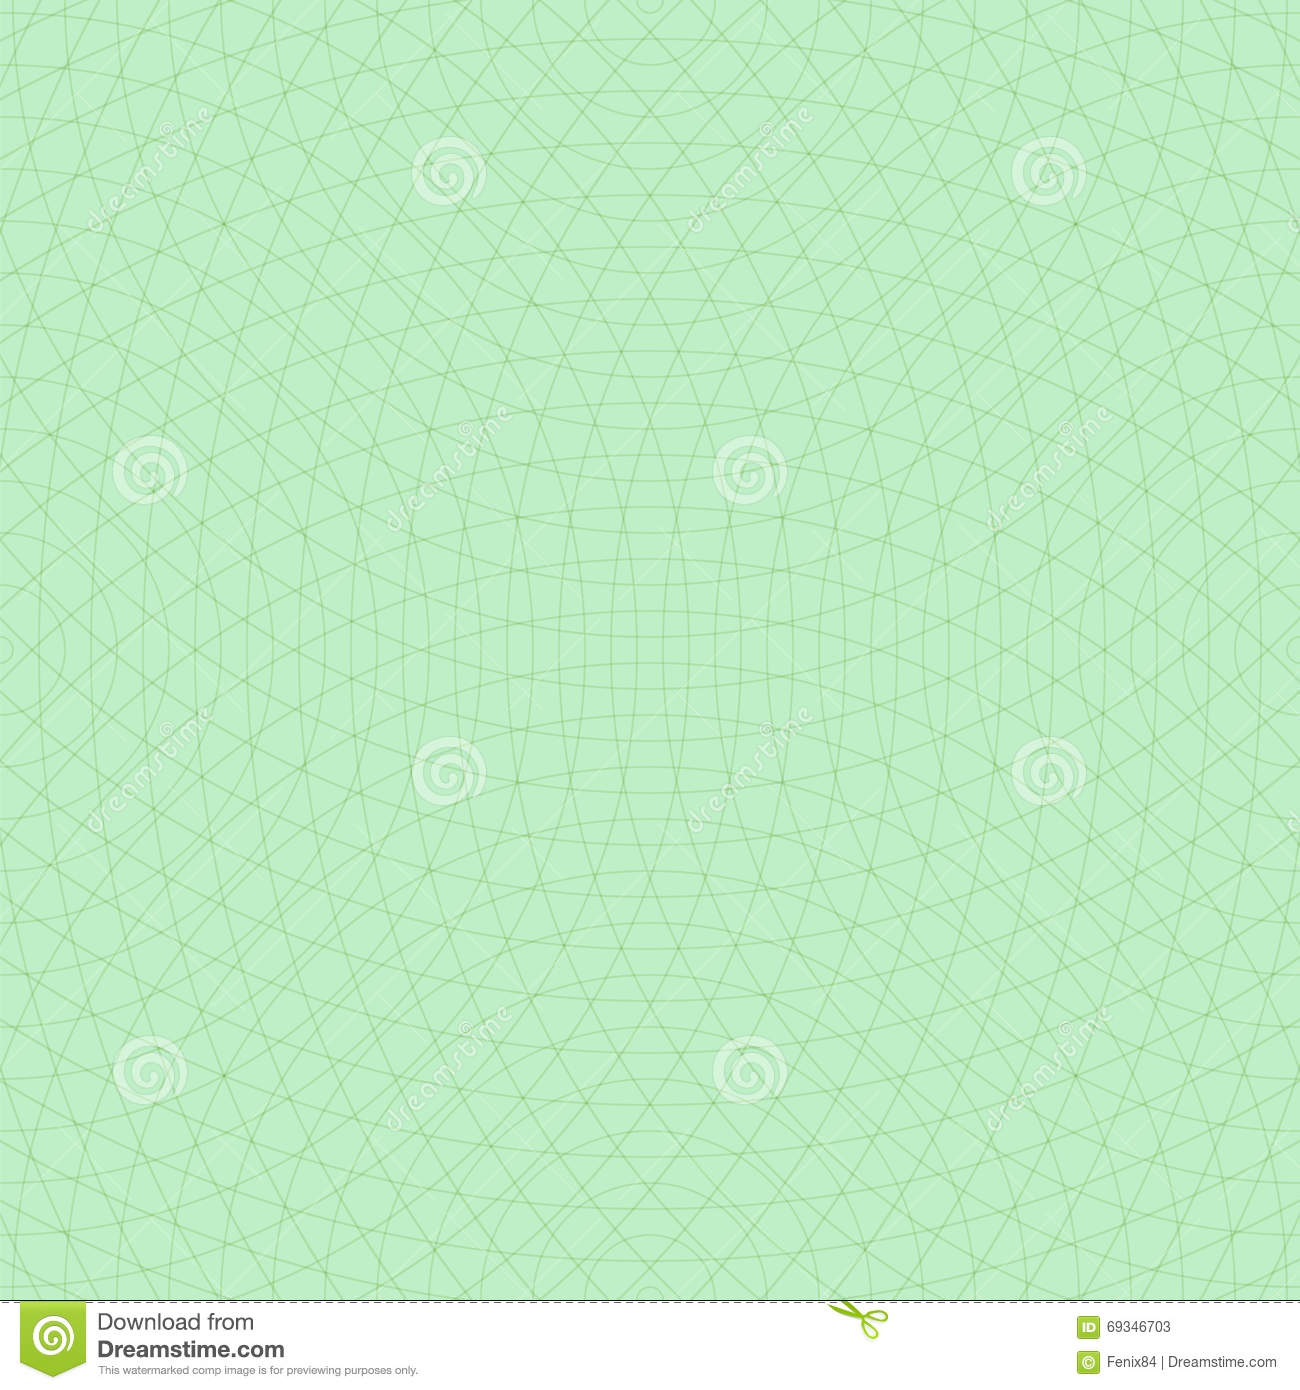 Crossed concentric circles. Seamless vector background.